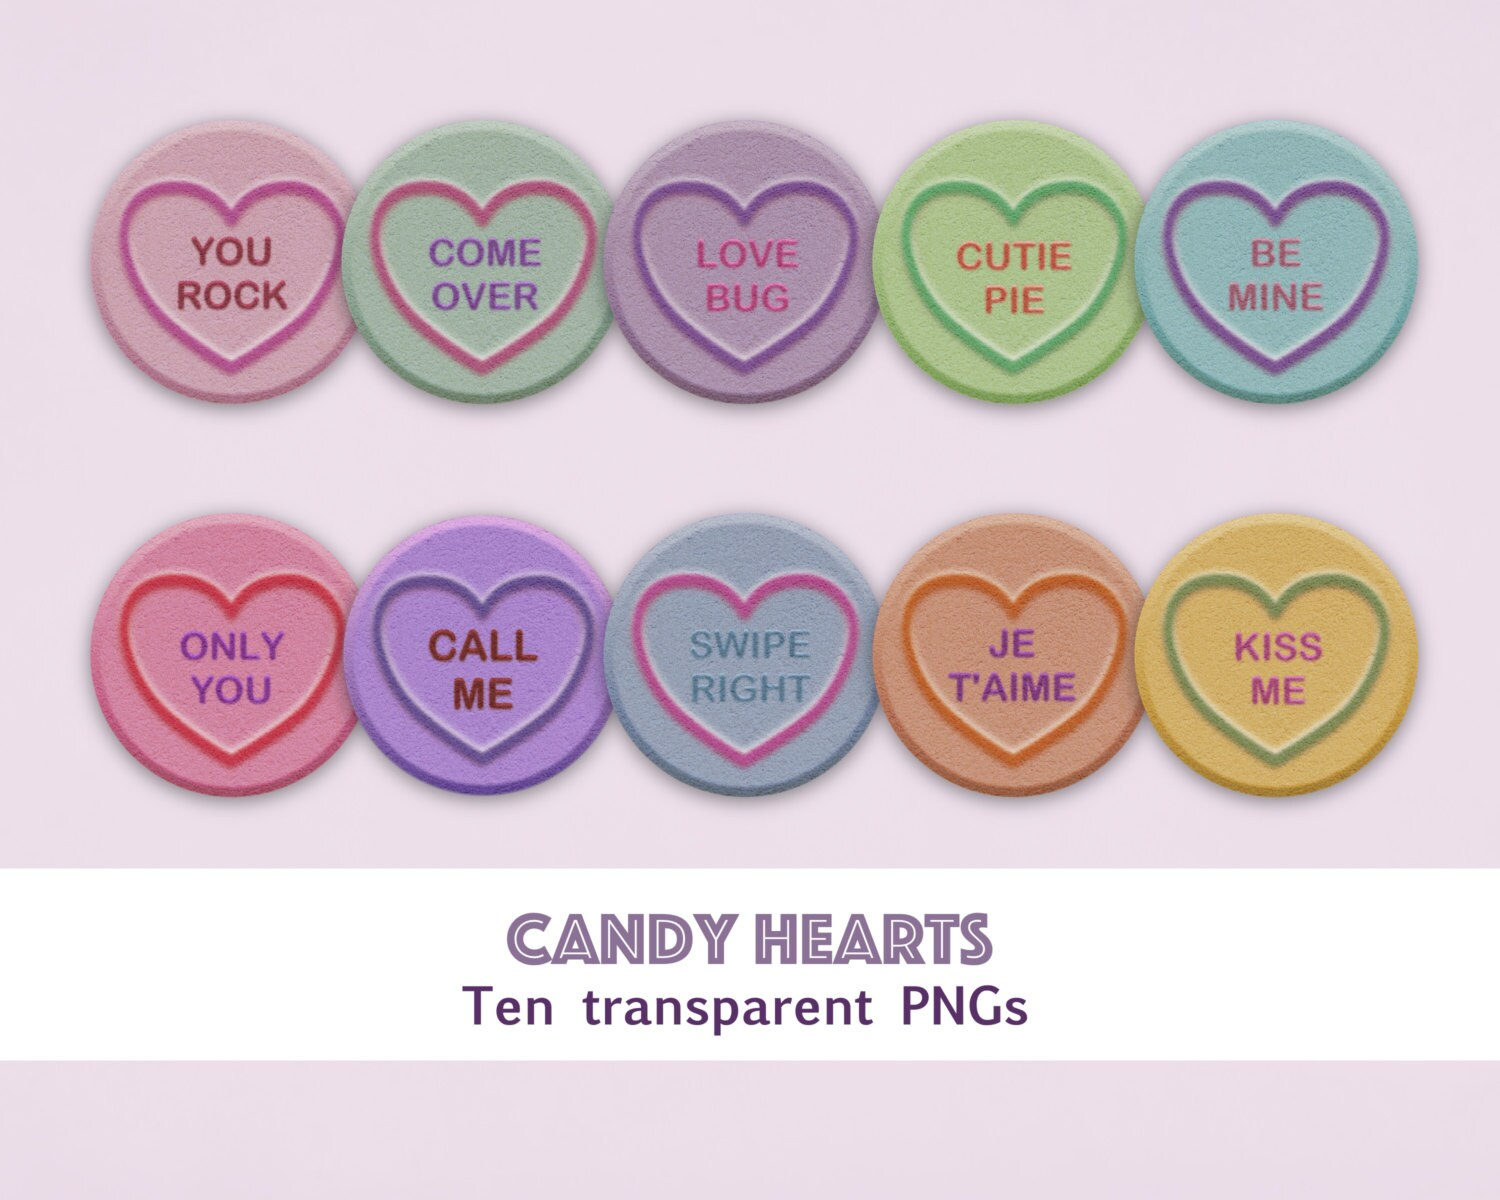 candy hearts clipart, love hearts clipart, valentine clipart, hearts